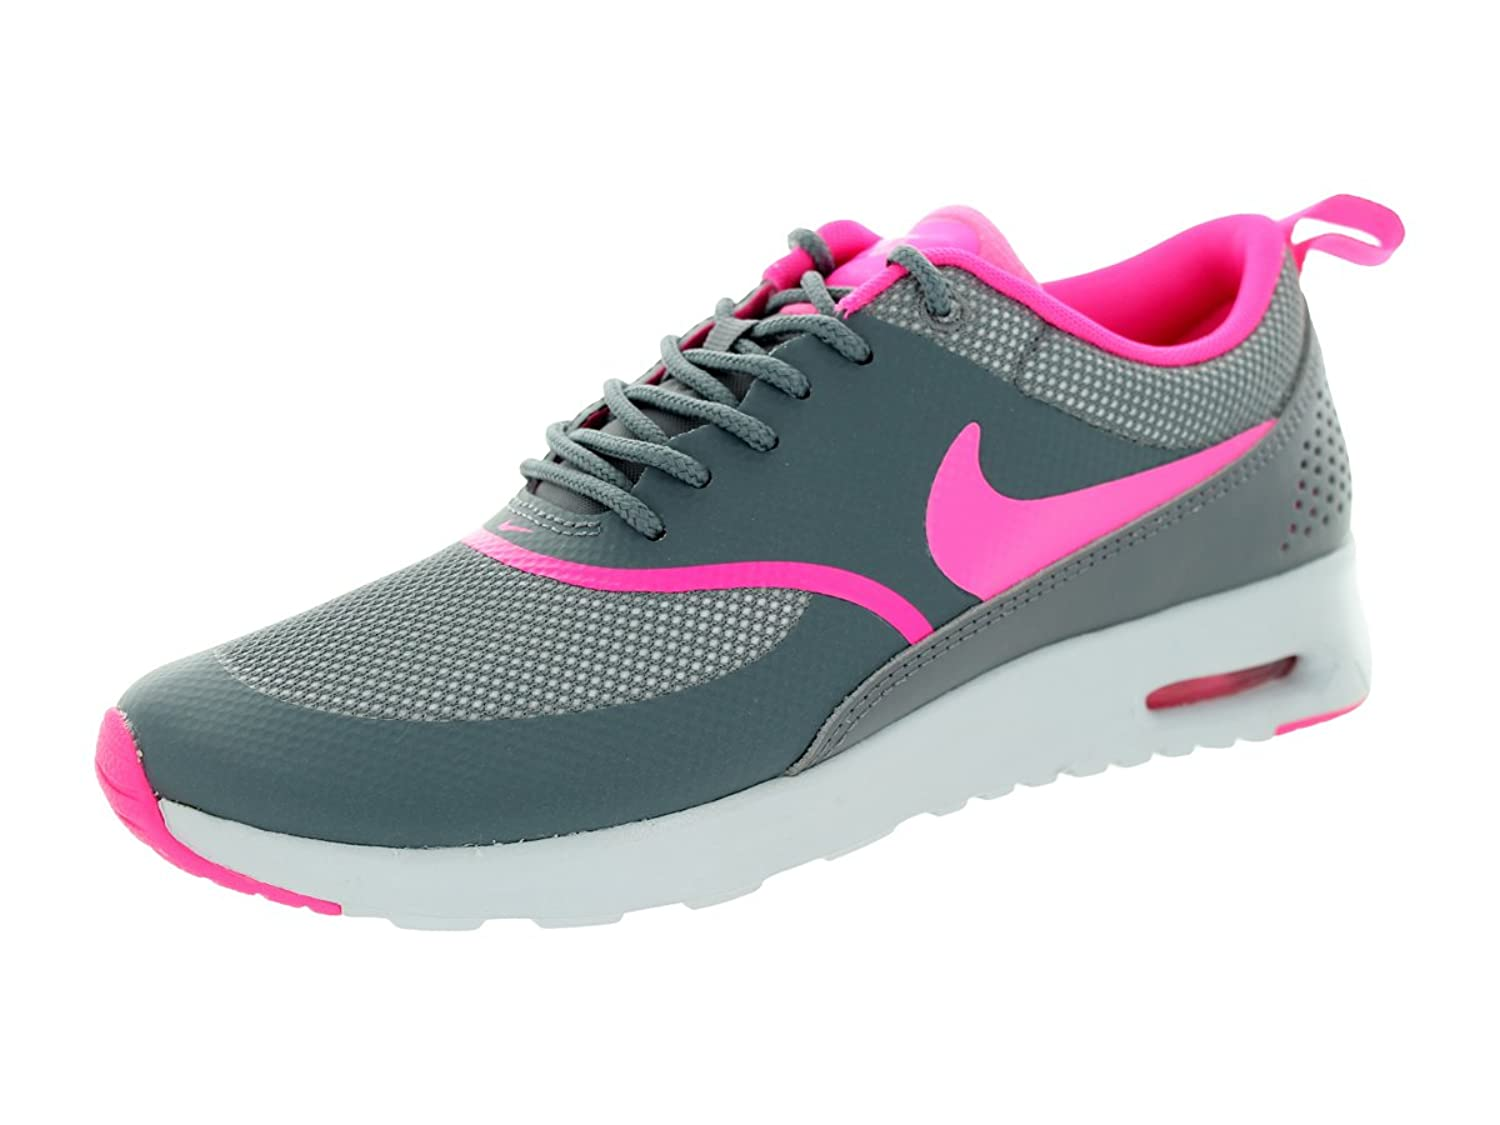 new arrival 968ad 584d6 Nike Womens Air Max Thea Running Shoe Cool Grey Pure Platinum Pink Pow 6.5